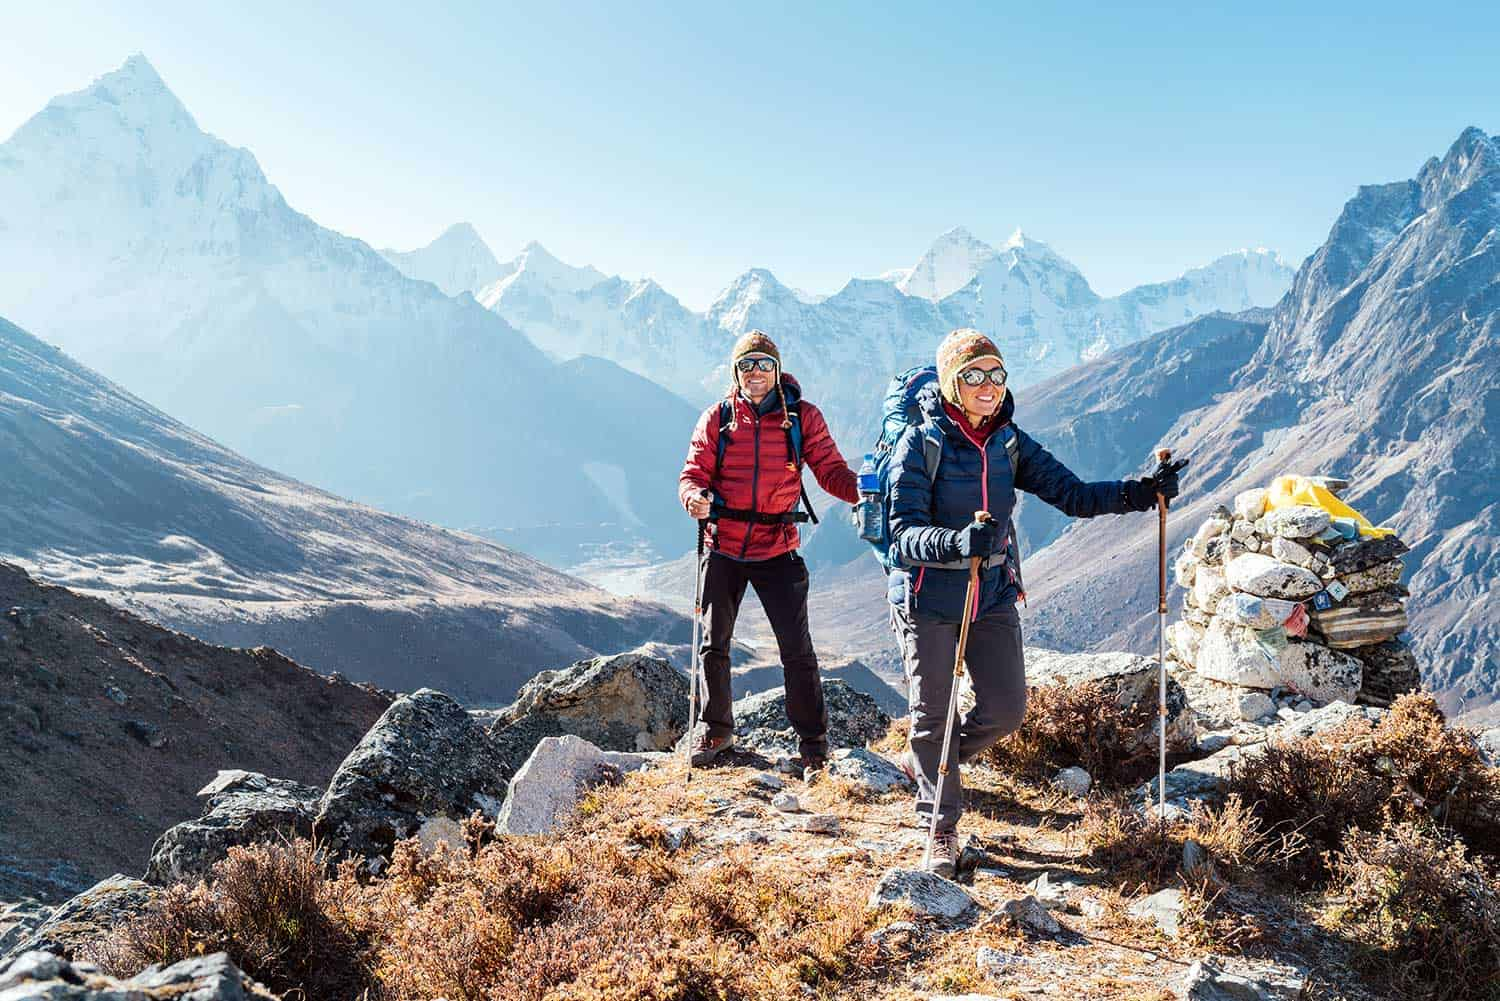 Backpackers carrying backpacks, using trekking poles and enjoying valley view